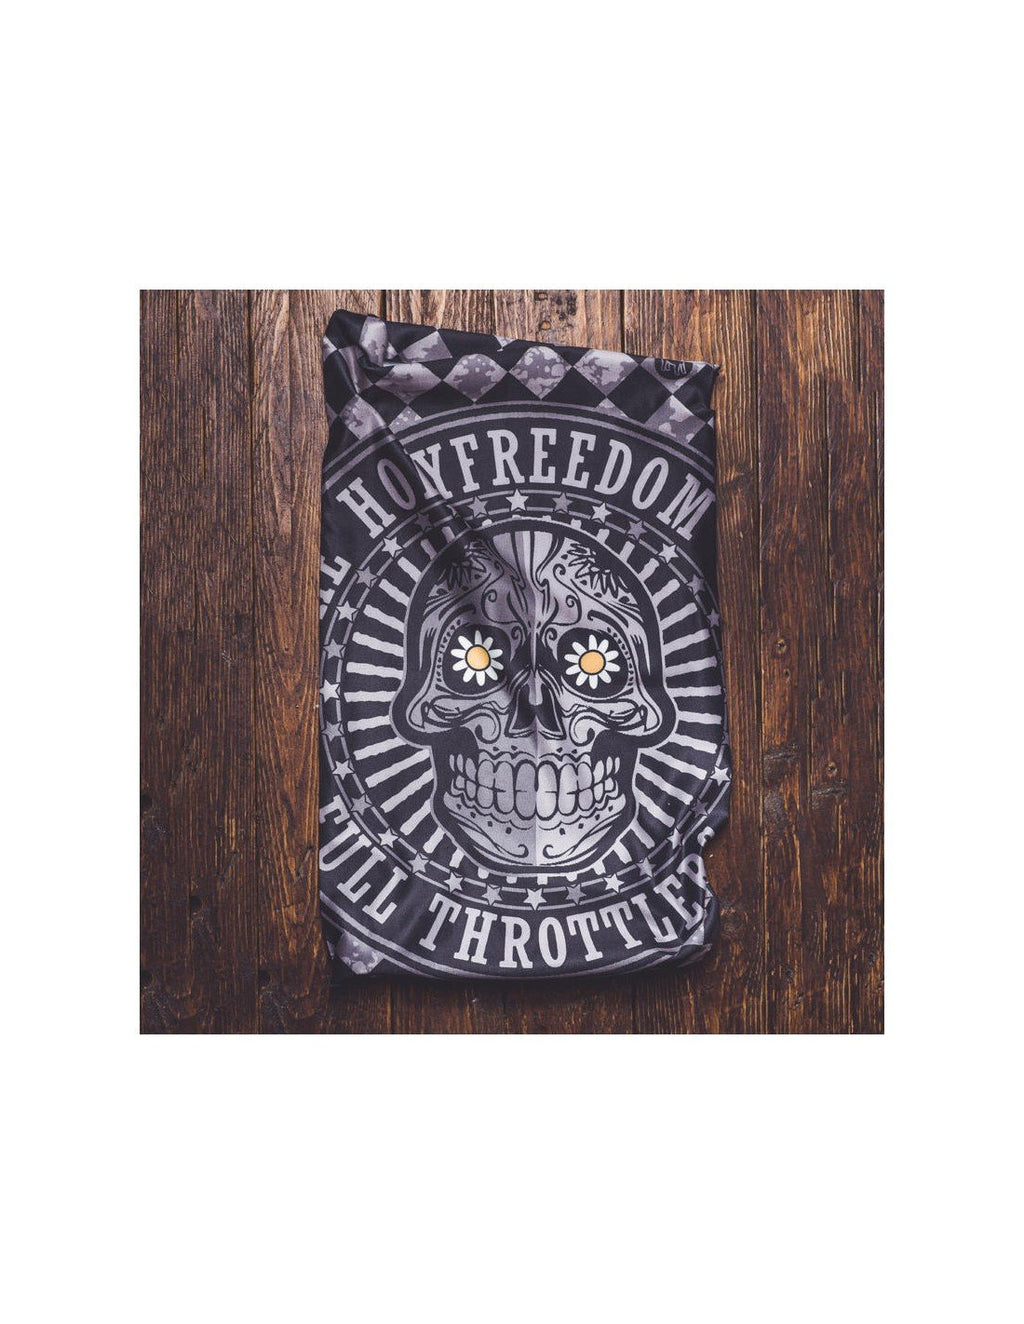 Holy Freedom Irongun Skull bandana tube